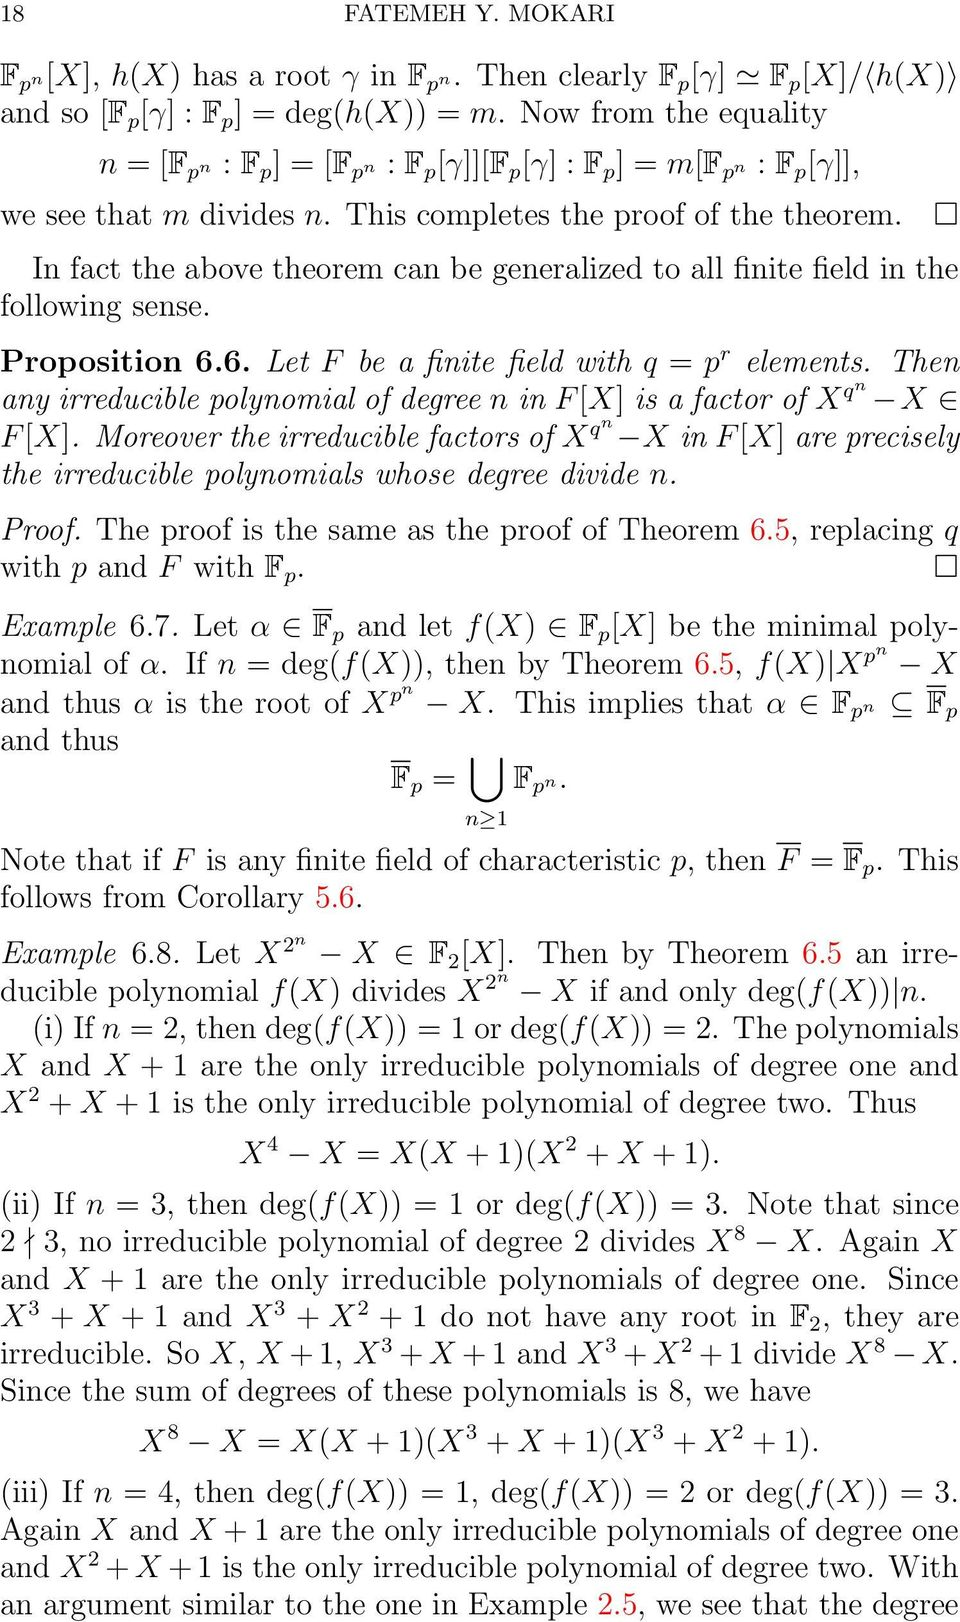 In fact the above theorem can be generalized to all finite field in the following sense. Proposition 6.6. Let F be a finite field with q = p r elements.